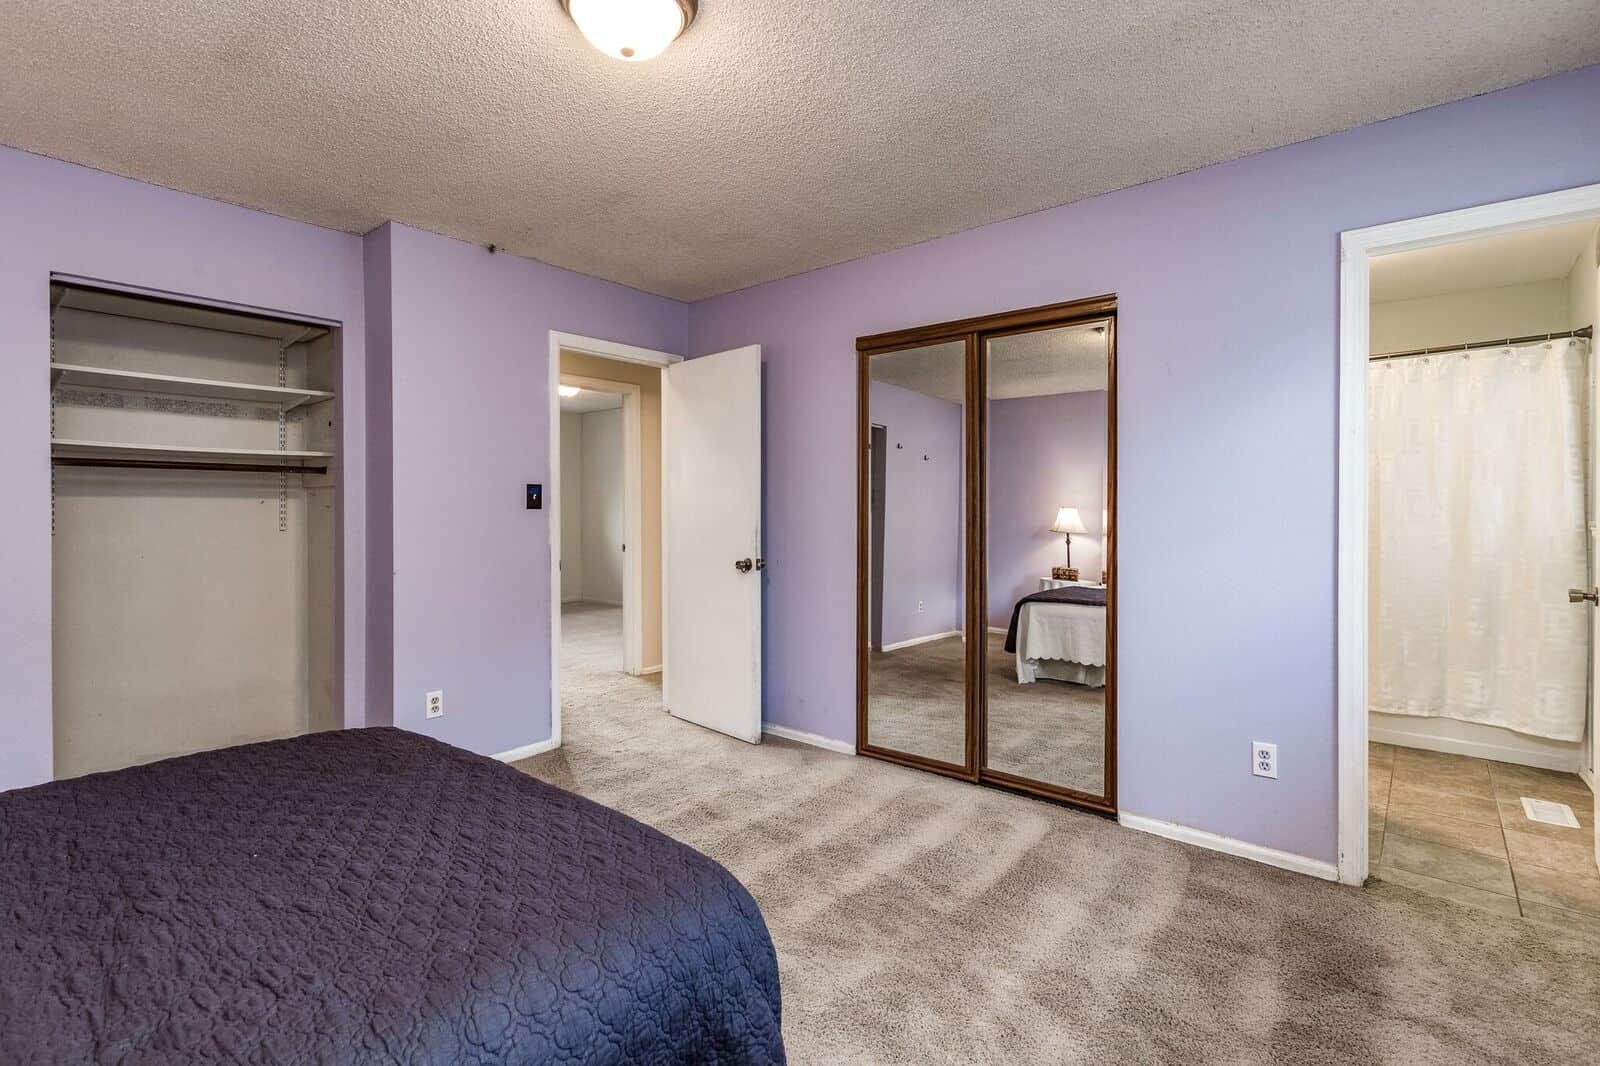 Master Bedroom with 2 Closets and Attached Bath